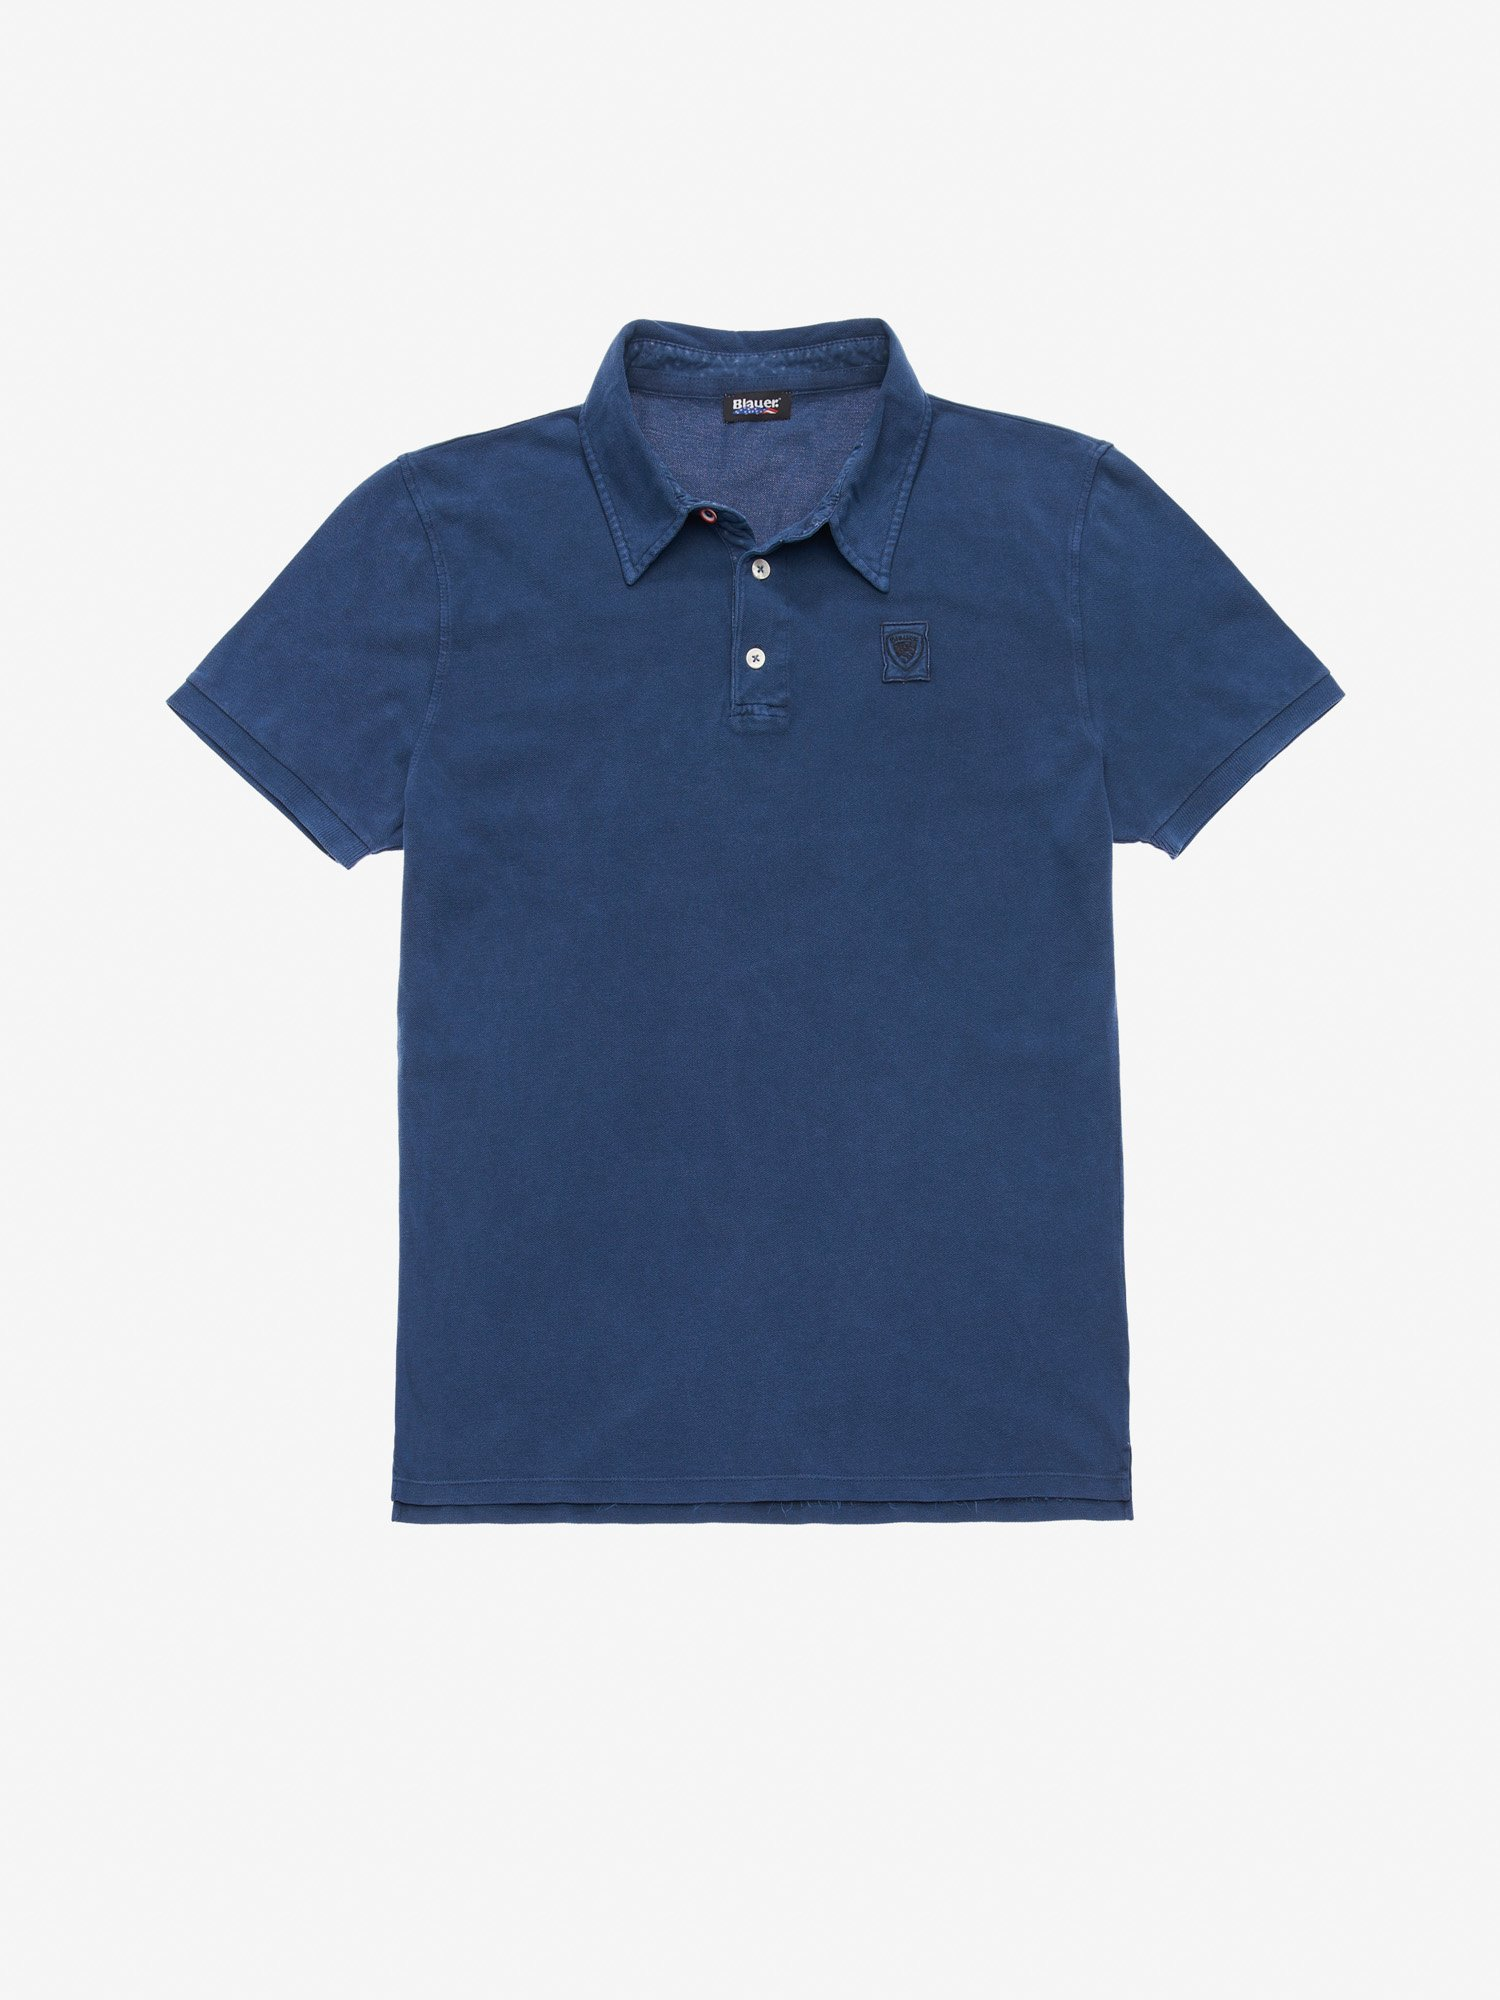 Blauer - GARMENT DYED POLO SHIRT - Blue Ink - Blauer